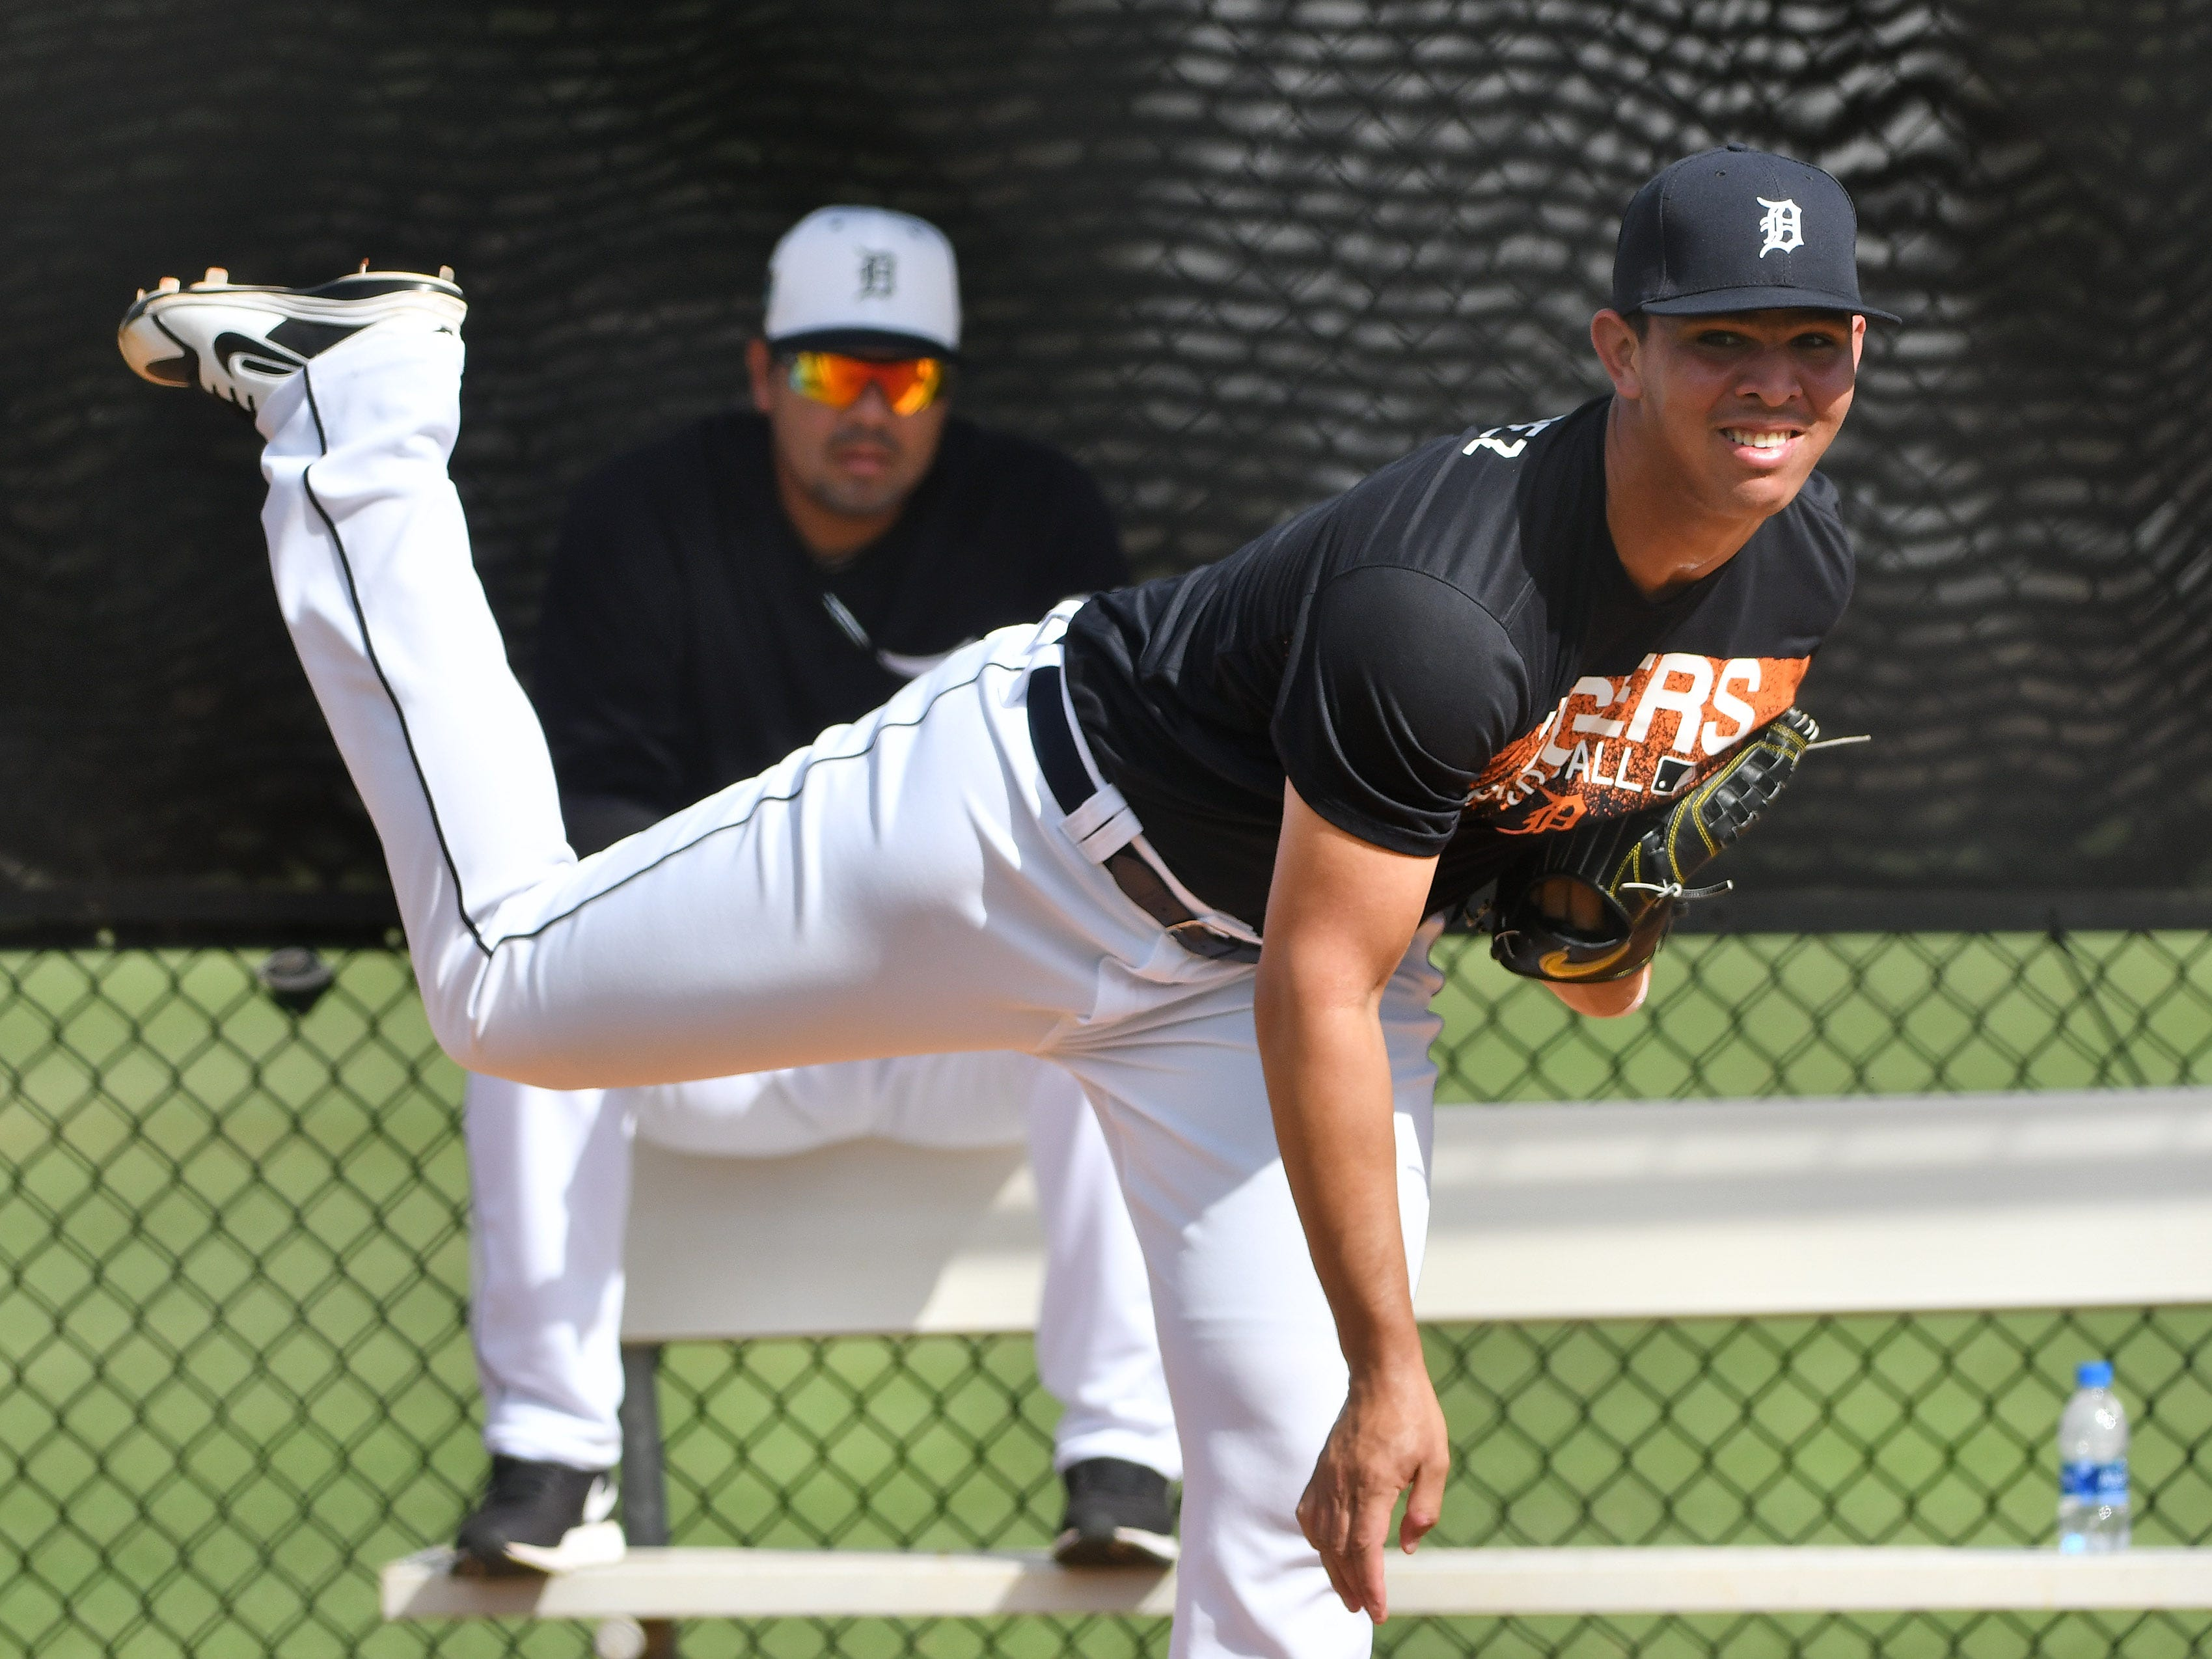 The Tigers added pitching prospect Franklin Perez to their 40-man roster Monday, protecting him from the Rule 5 draft.